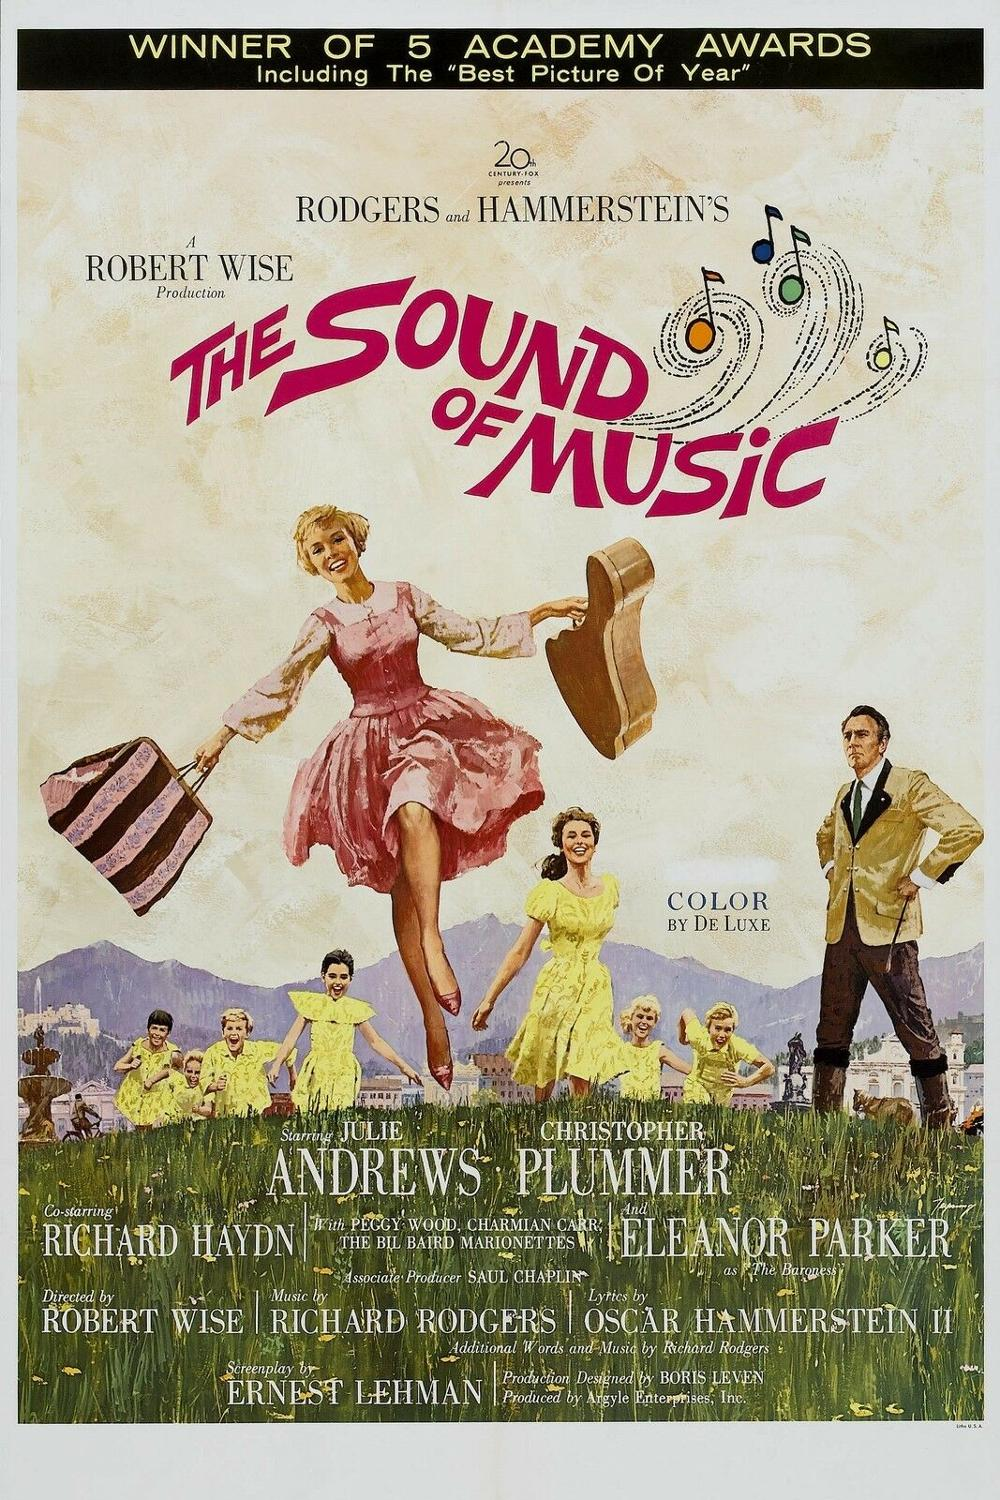 N0159 THE SOUND OF MUSIC Movie Wall Sticker Silk Fabric Poster Art Indoor Decor Bright image